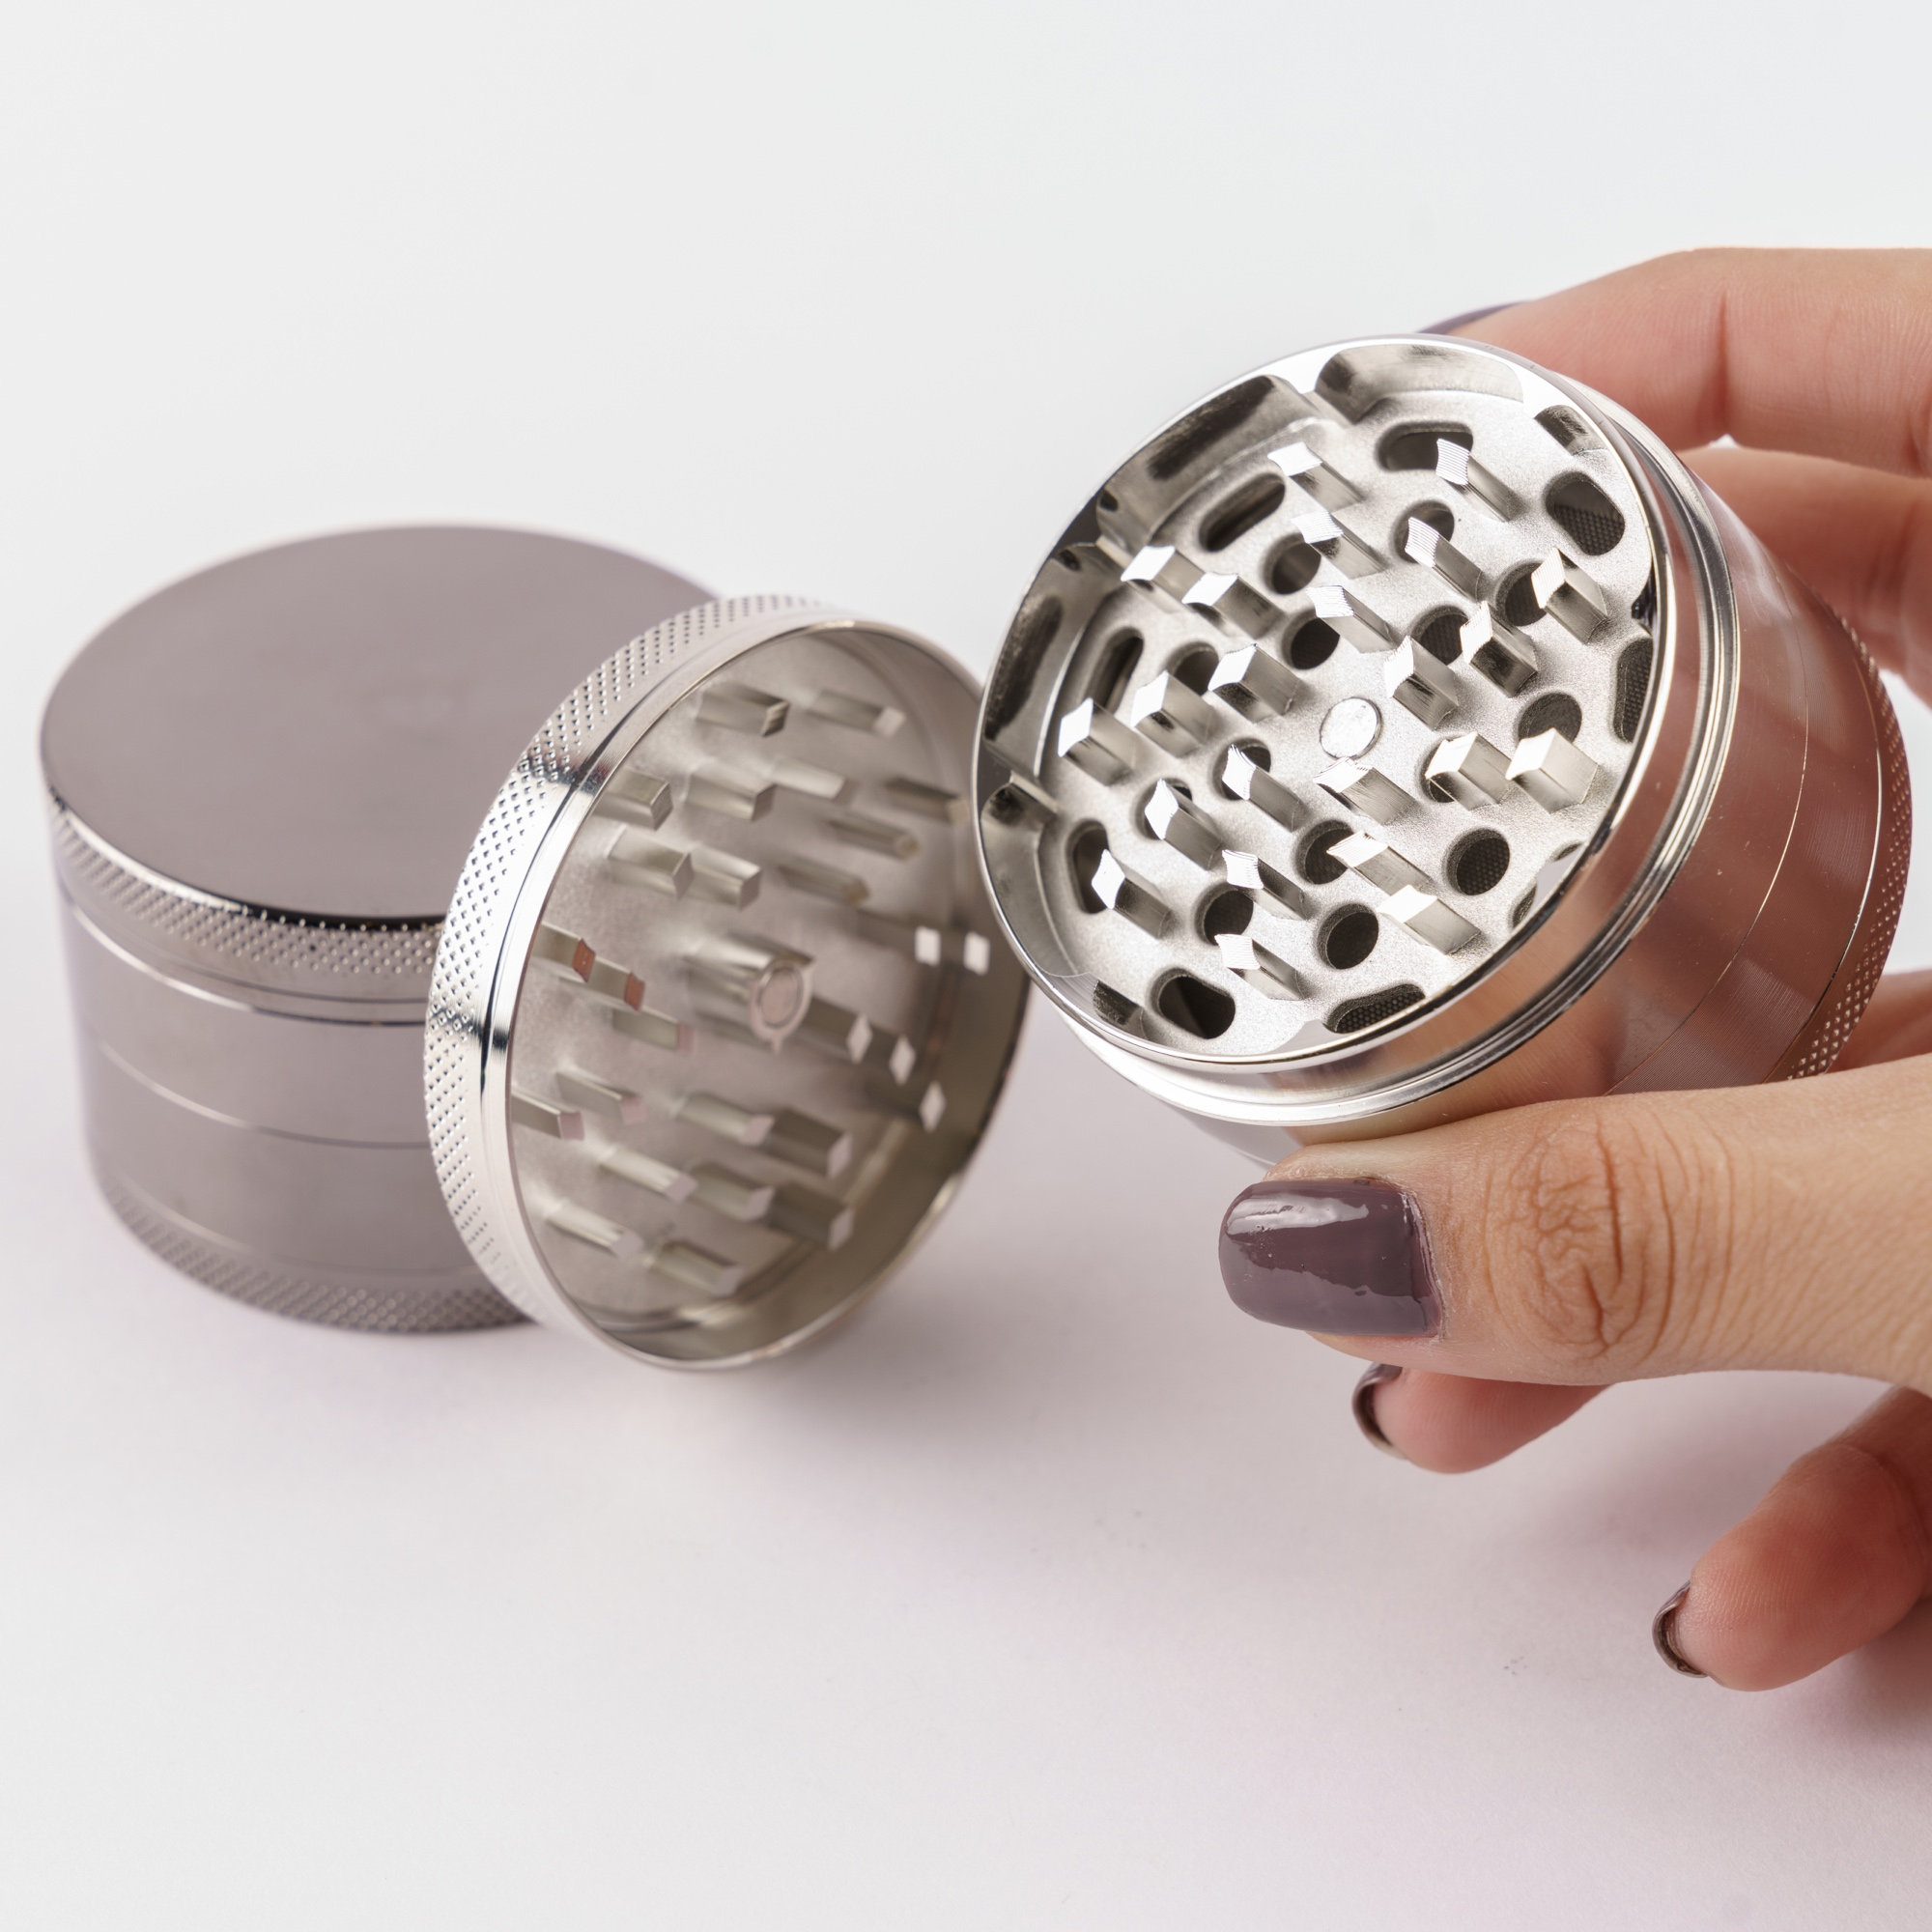 Get a high quality 4 chambered grinder with this premium smoking bundle.